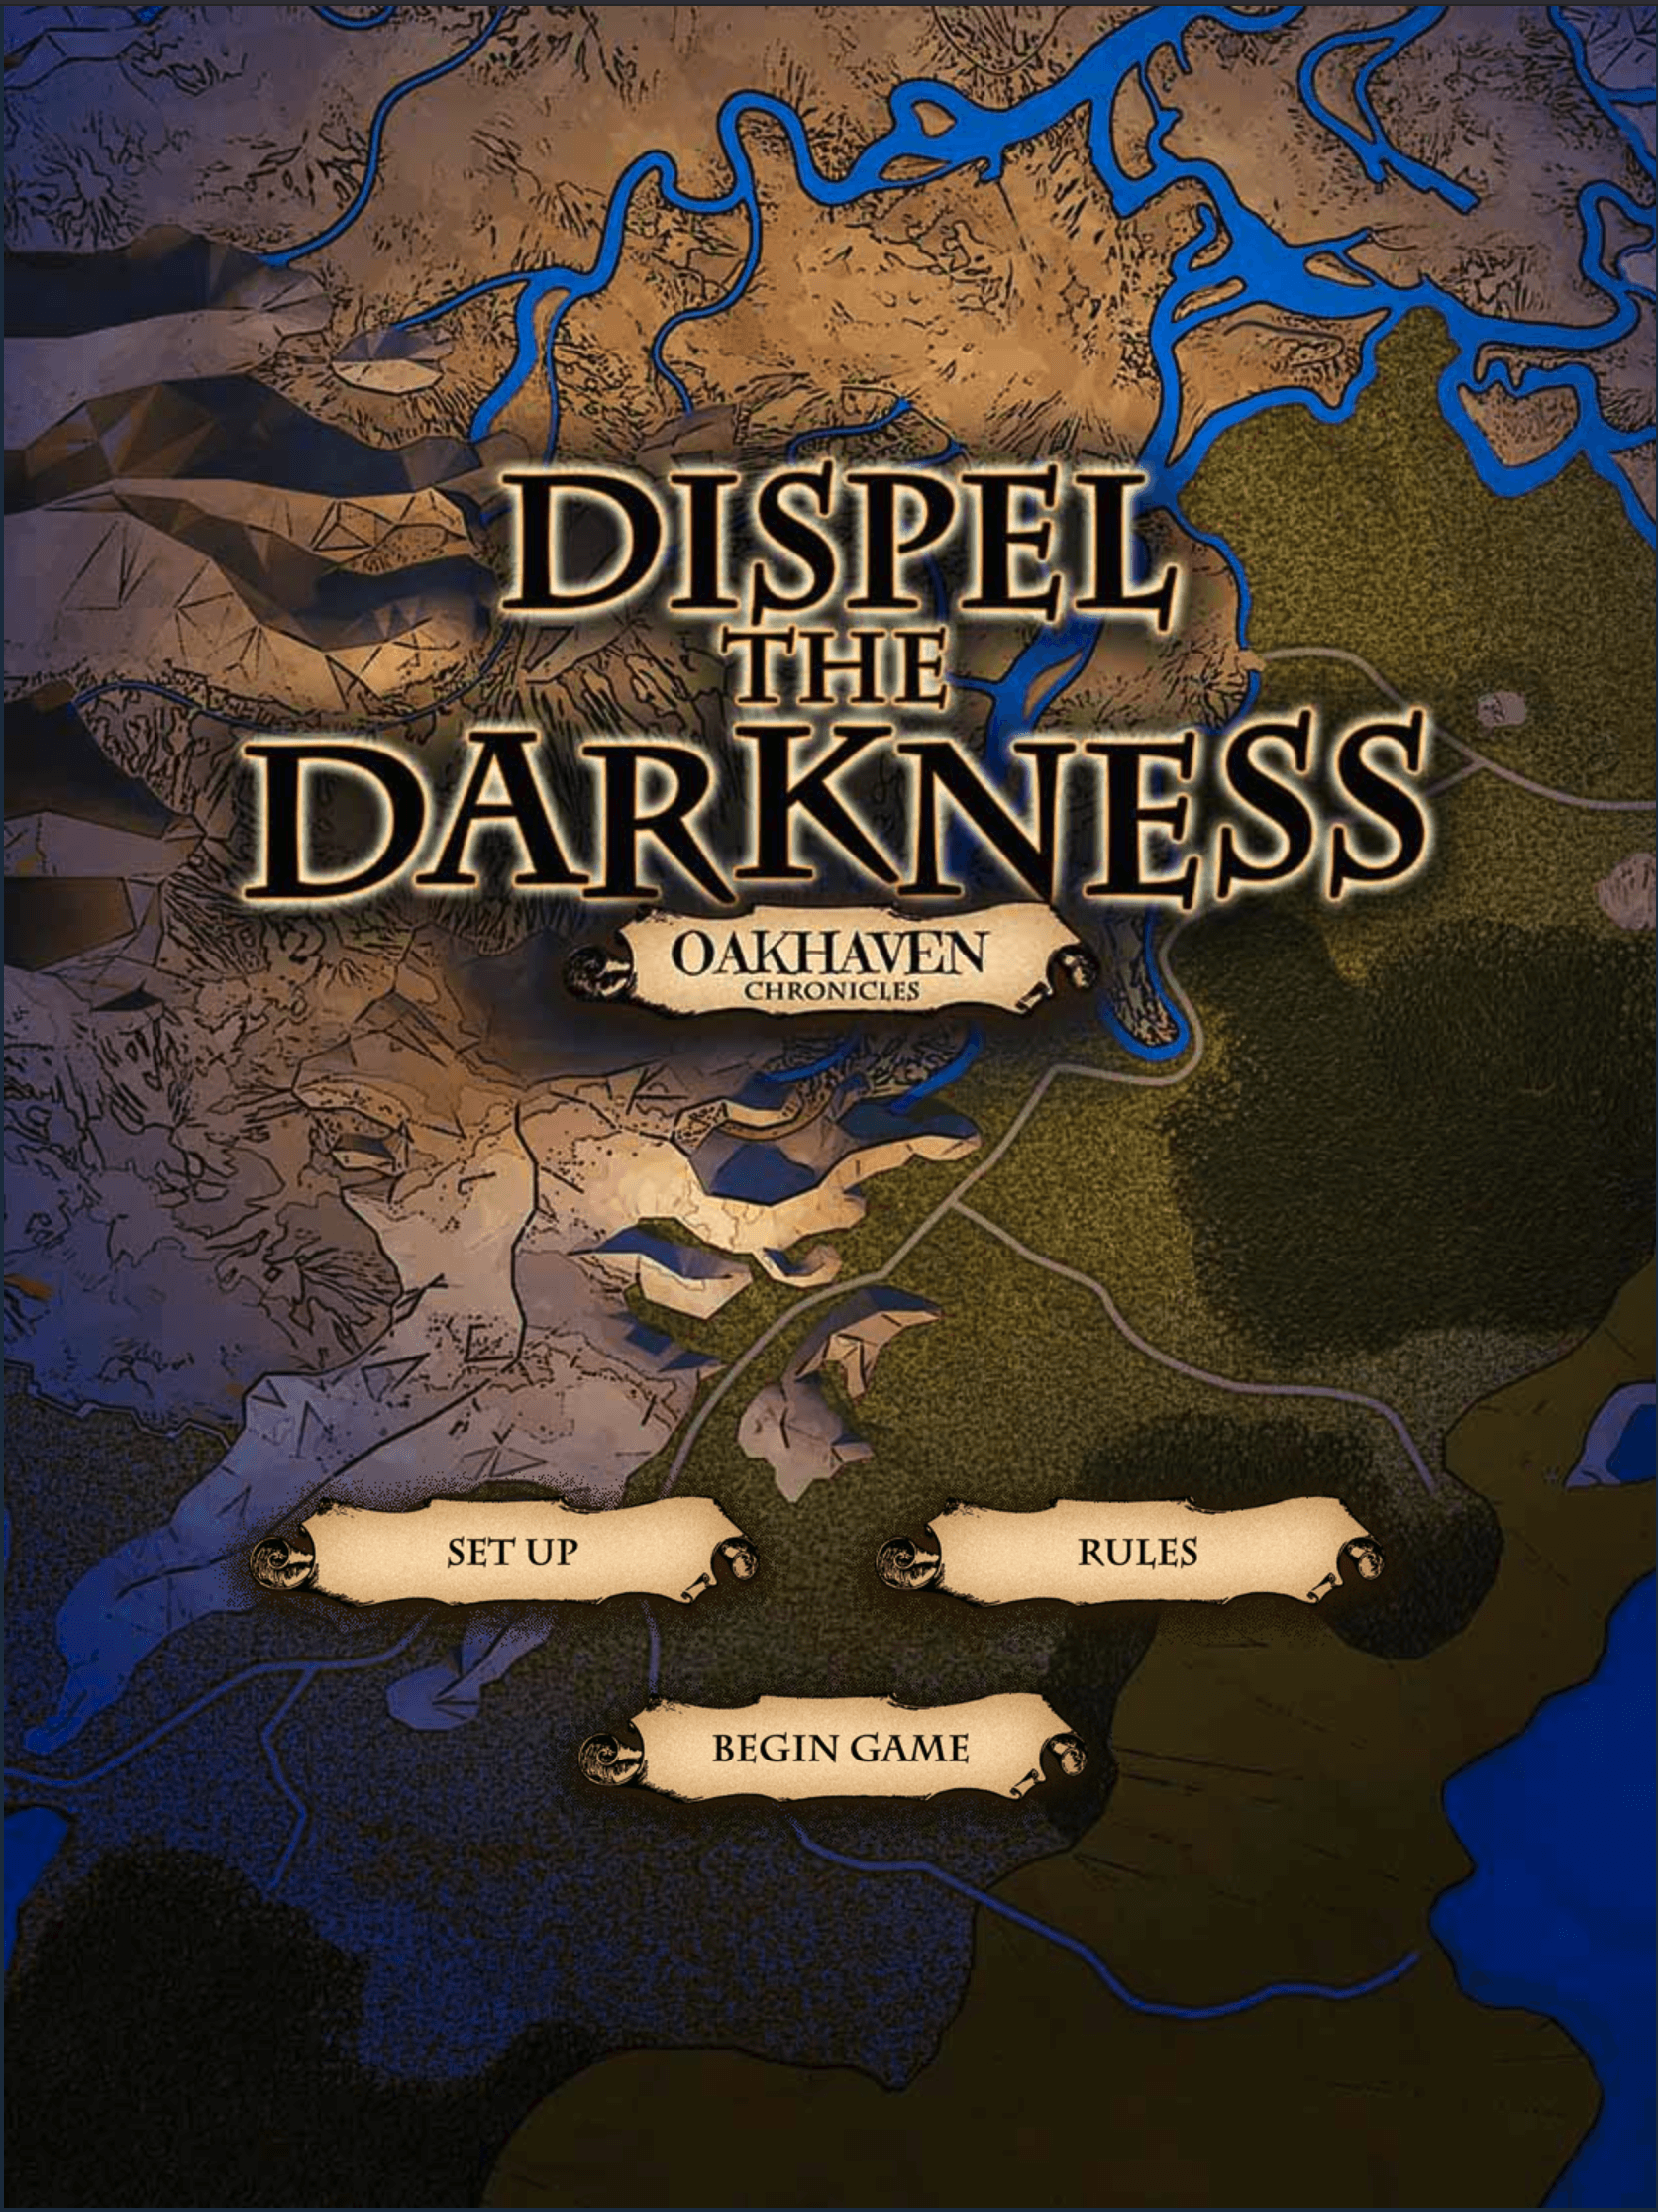 Dispel The Darkness: Oakhaven Chronicles